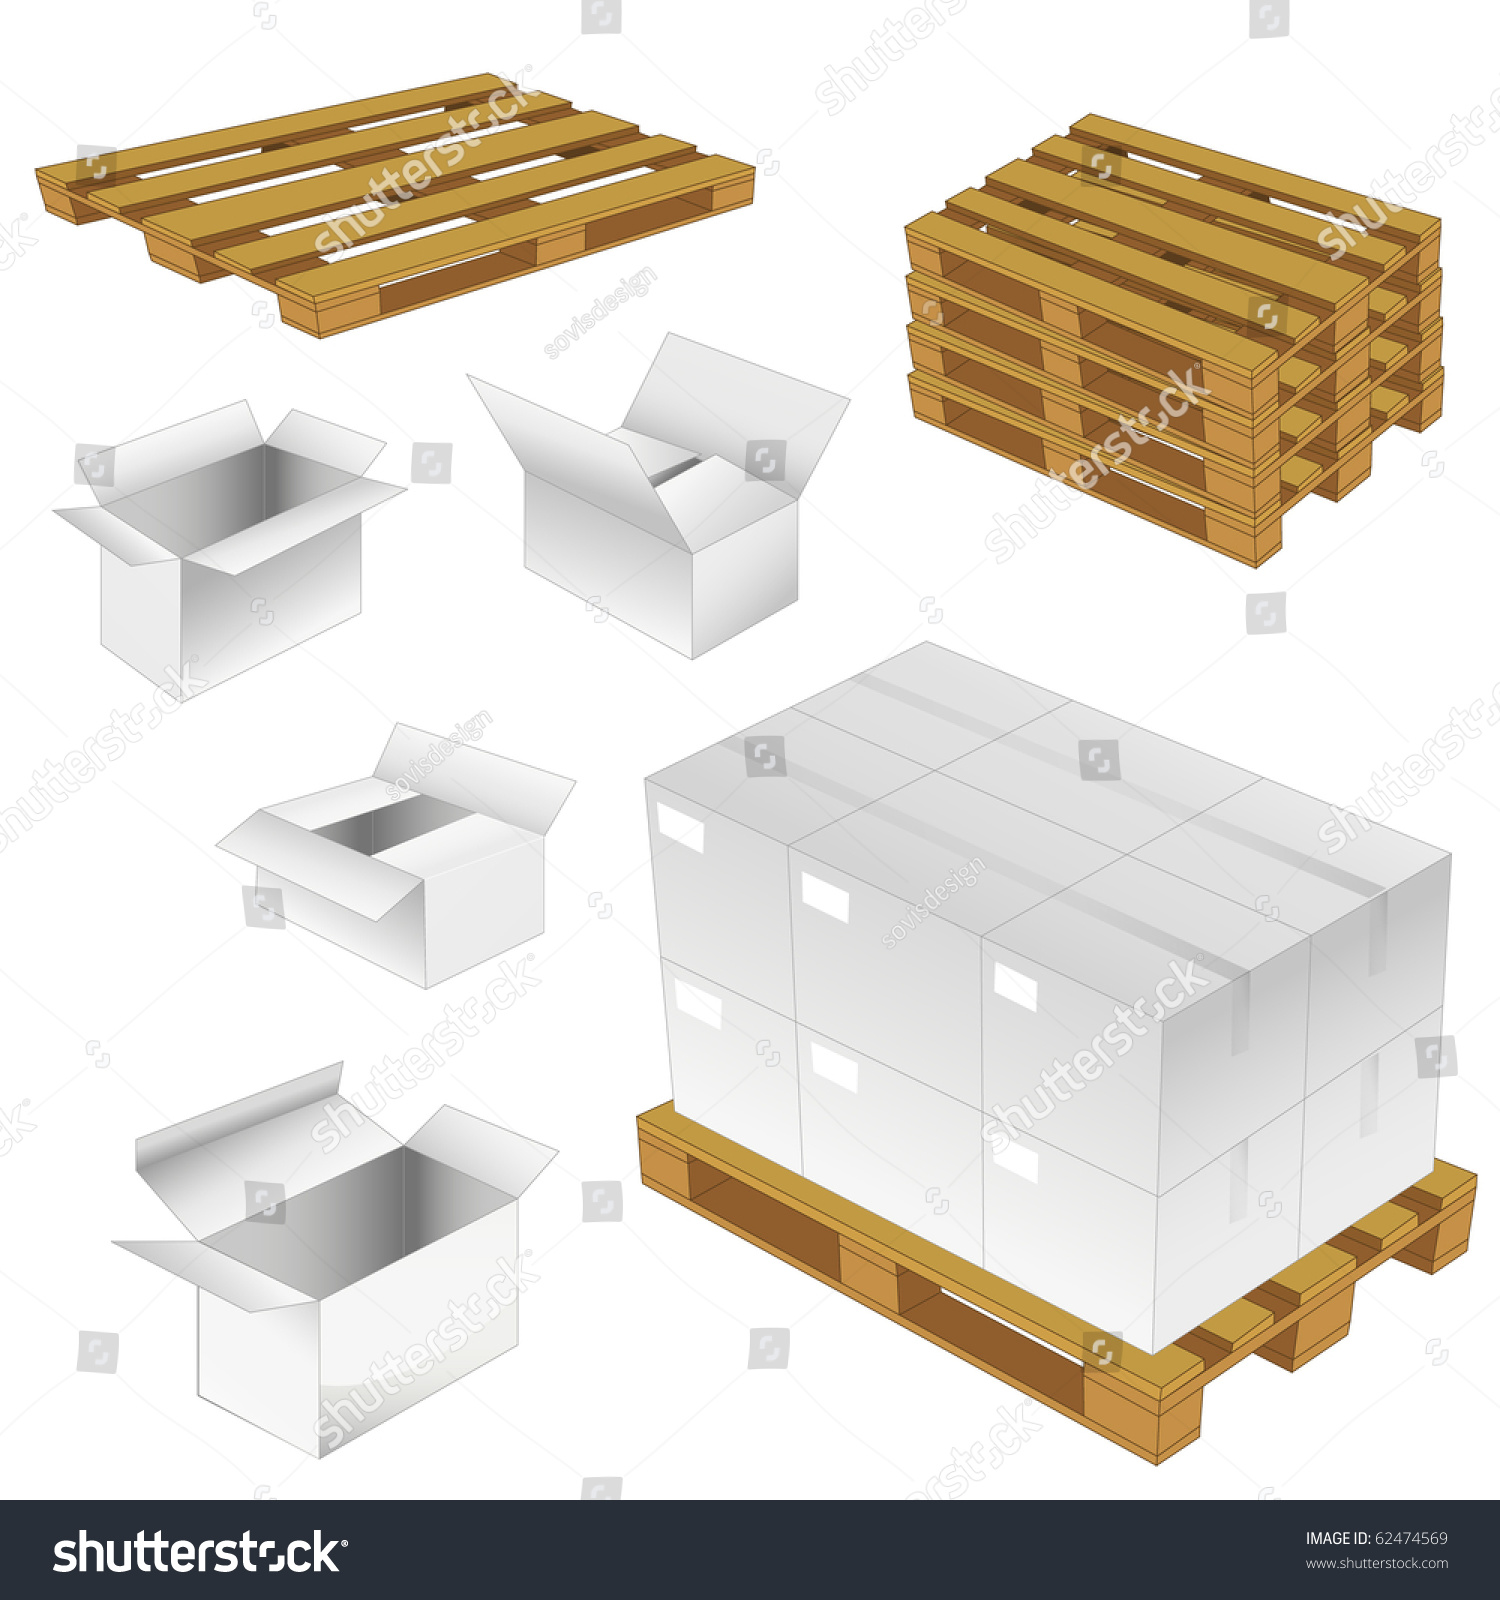 Set Of Cardboard Boxes And Wood Pallets. Vector Illustration ...